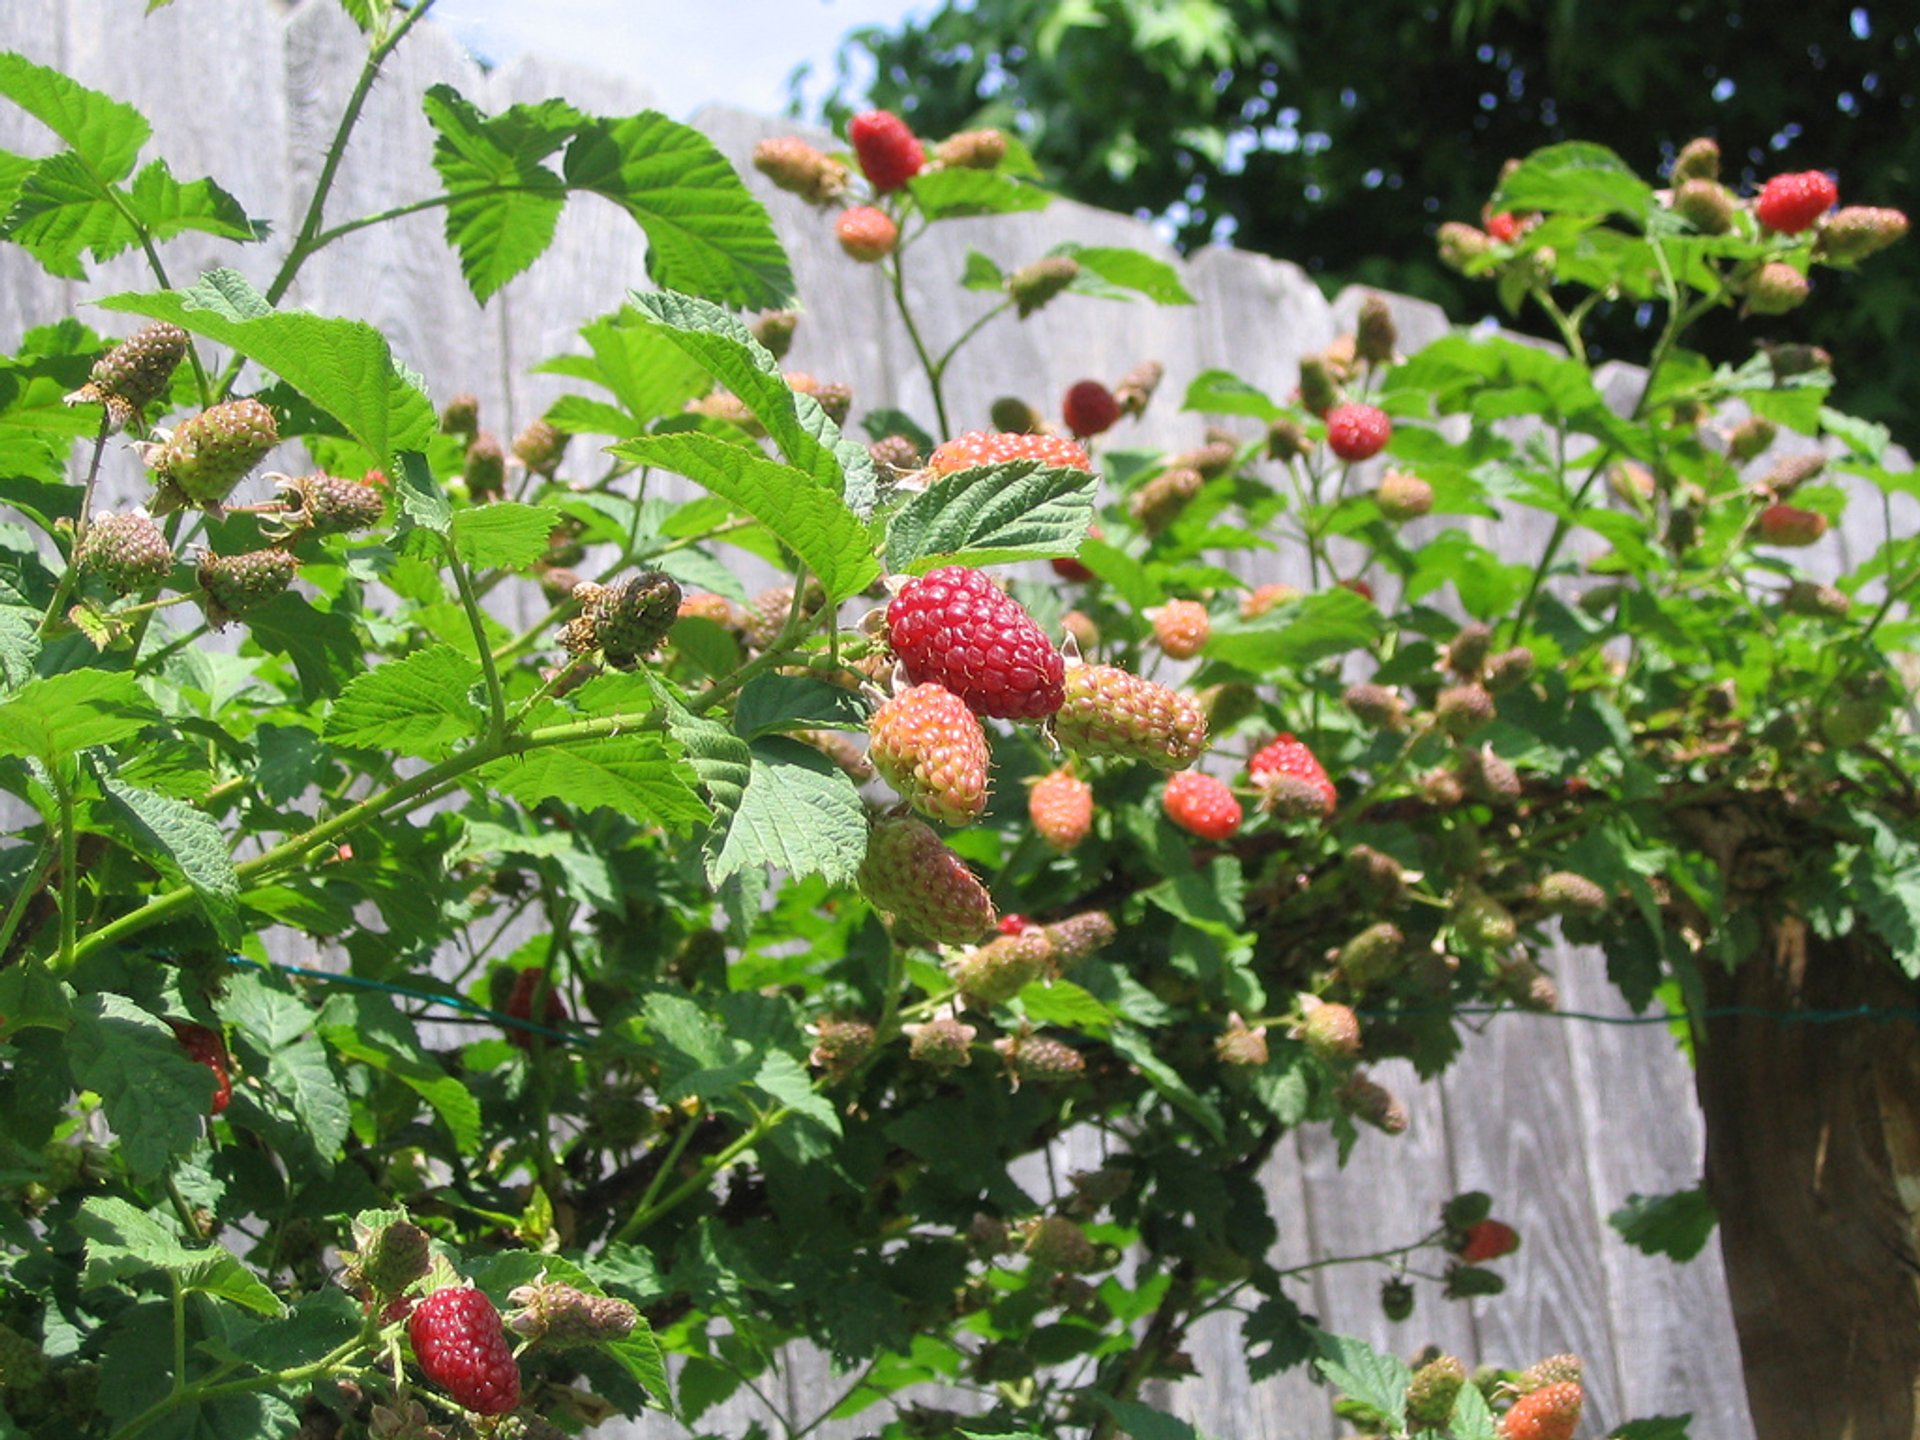 Loganberries in Ireland - Best Season 2020